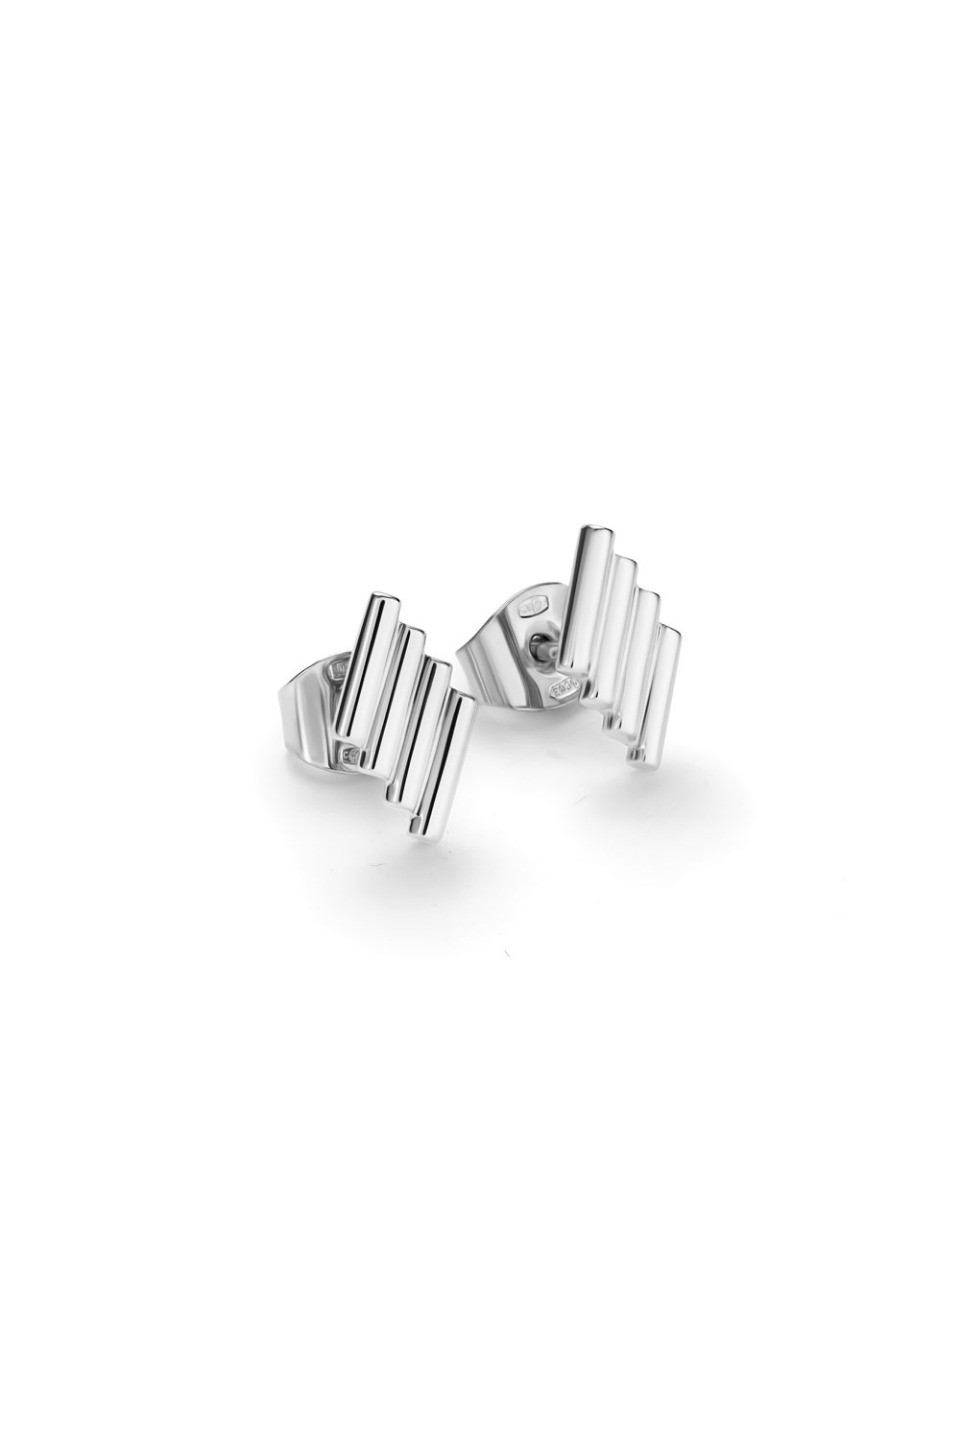 Bugle Bead Stud Earrings